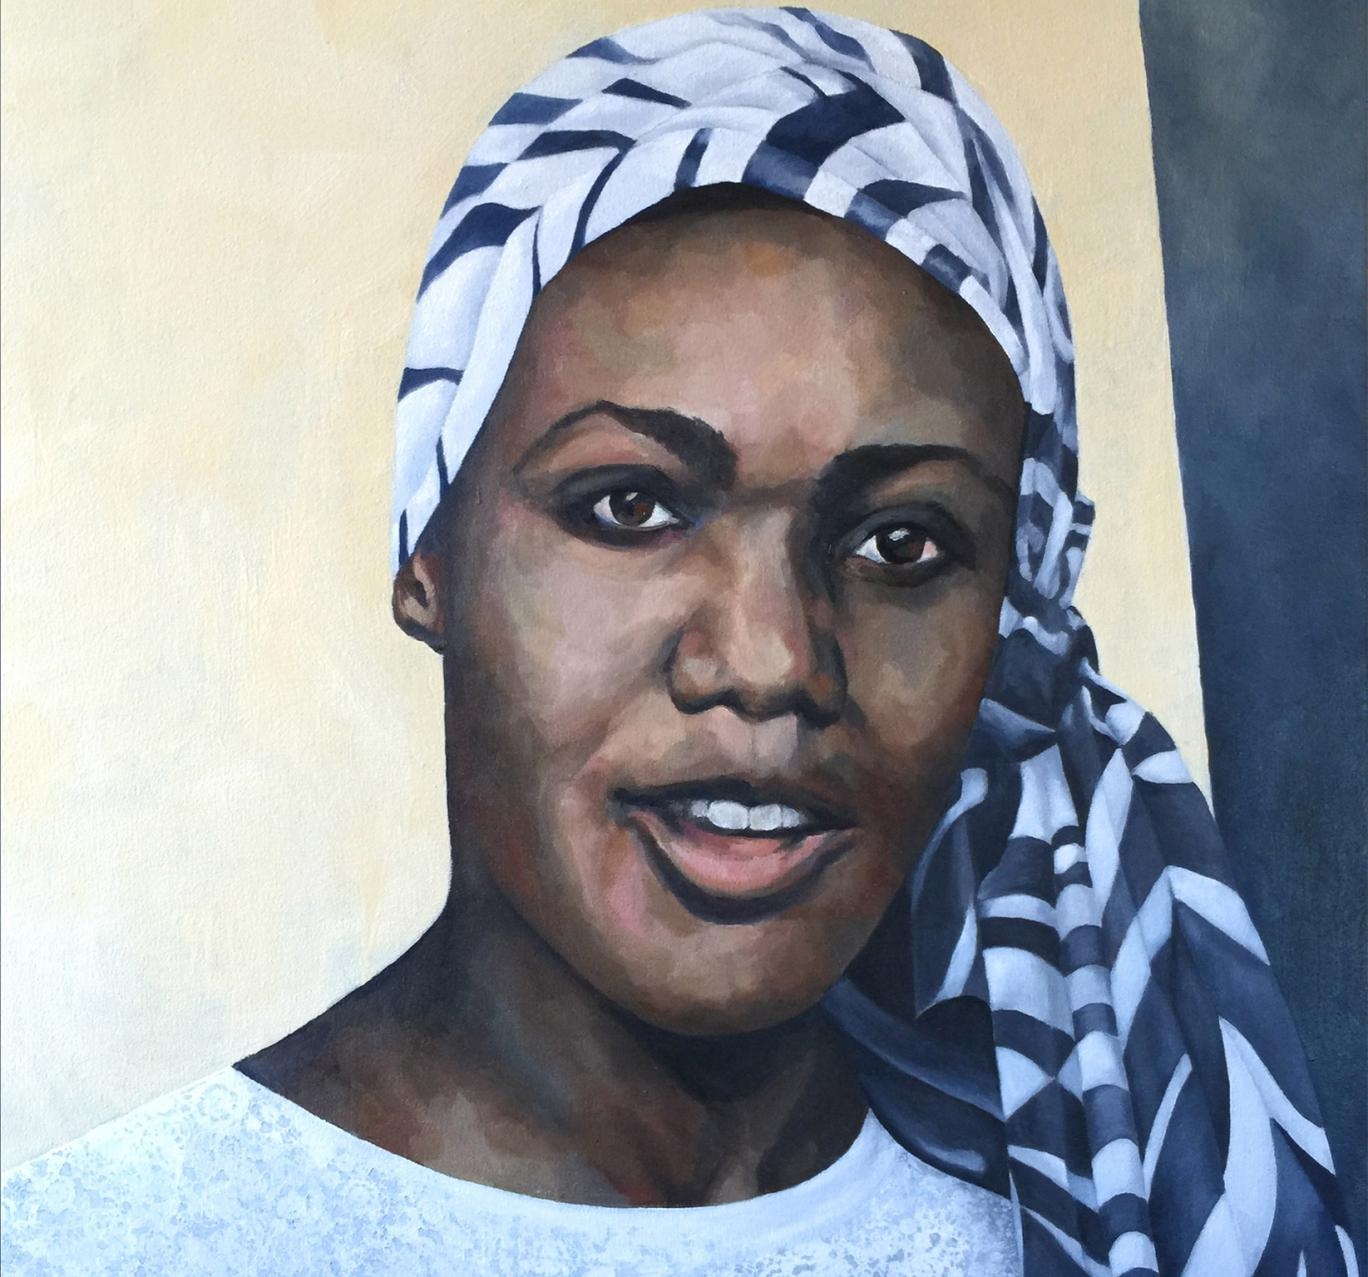 The portrait of Lucy Banda Sichone, by Deirdre Saunder, was unveiled at Oxford's Rhodes House on Wednesday Kirsty Lowe